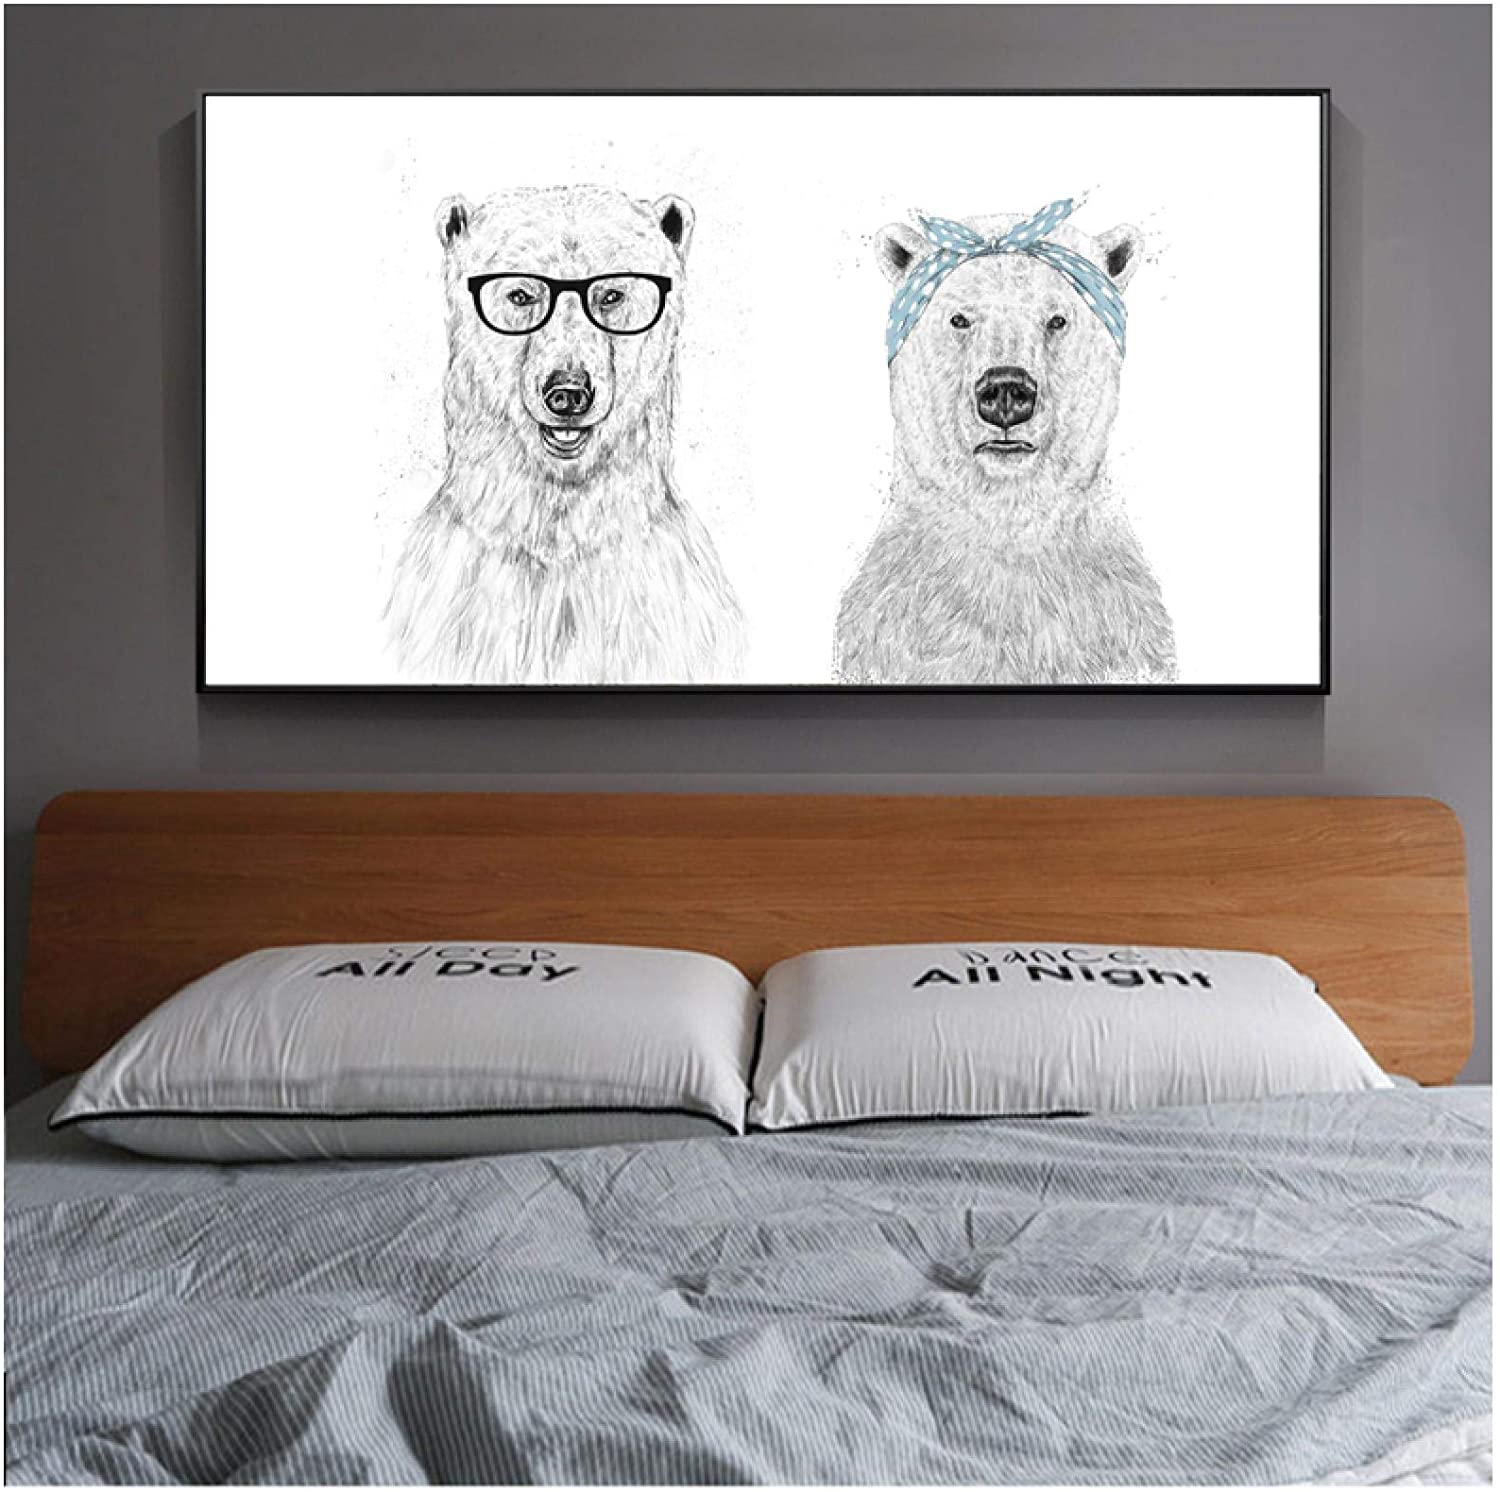 PIPAO Modern CanvasNordic Minimalist Polar Bear Animal on The Wall Posters and Prints Wall Art Pictures Home Decoration 19.7x39.4in(50x100cm) x1pcs NoFrame